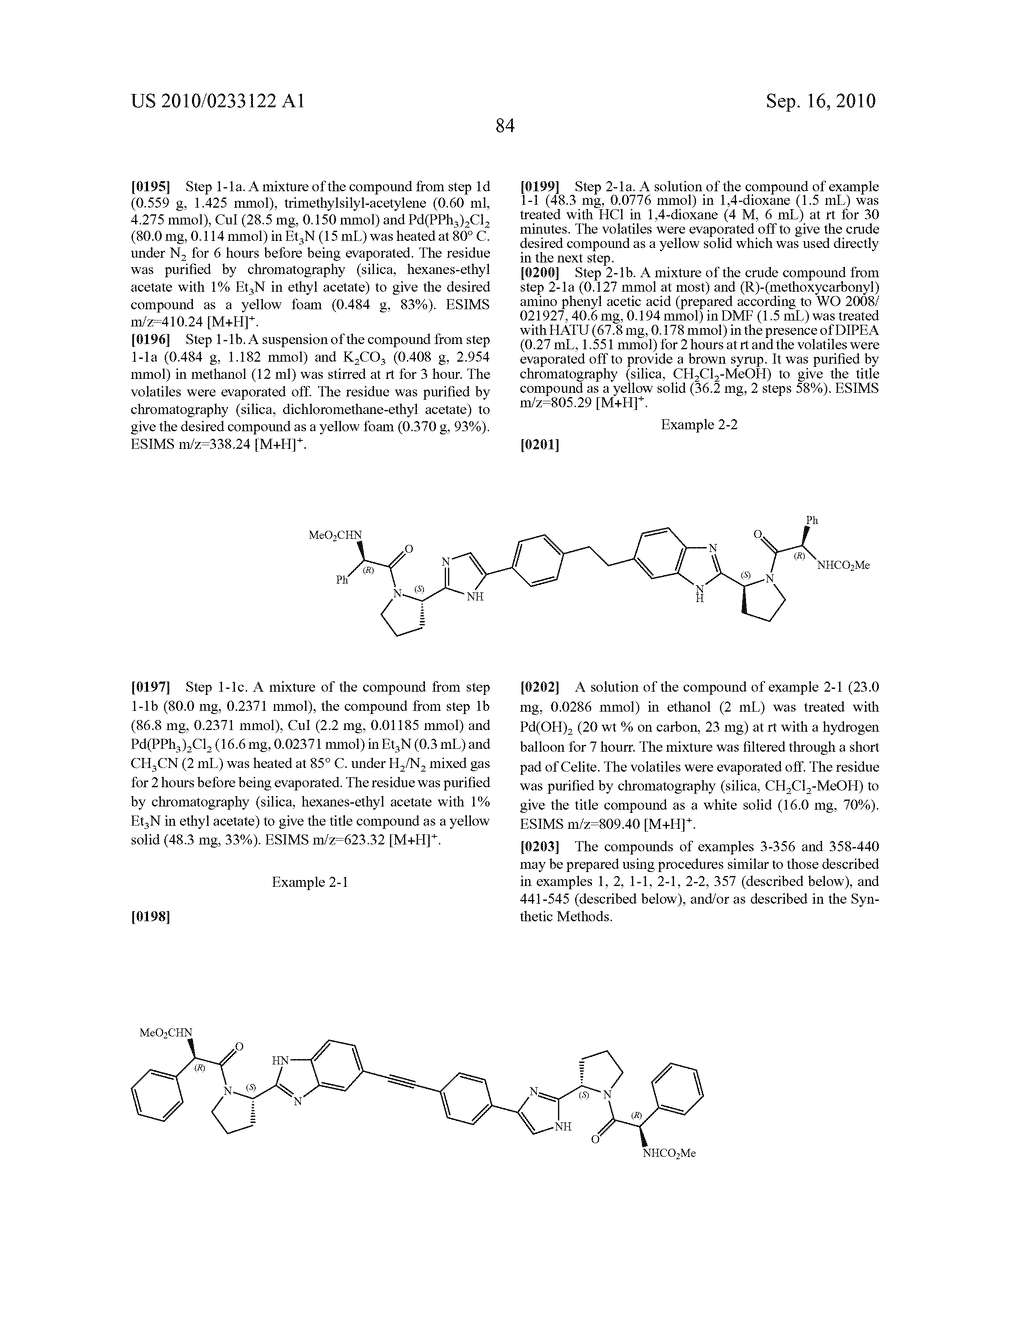 NOVEL BENZIMIDAZOLE DERIVATIVES - diagram, schematic, and image 85